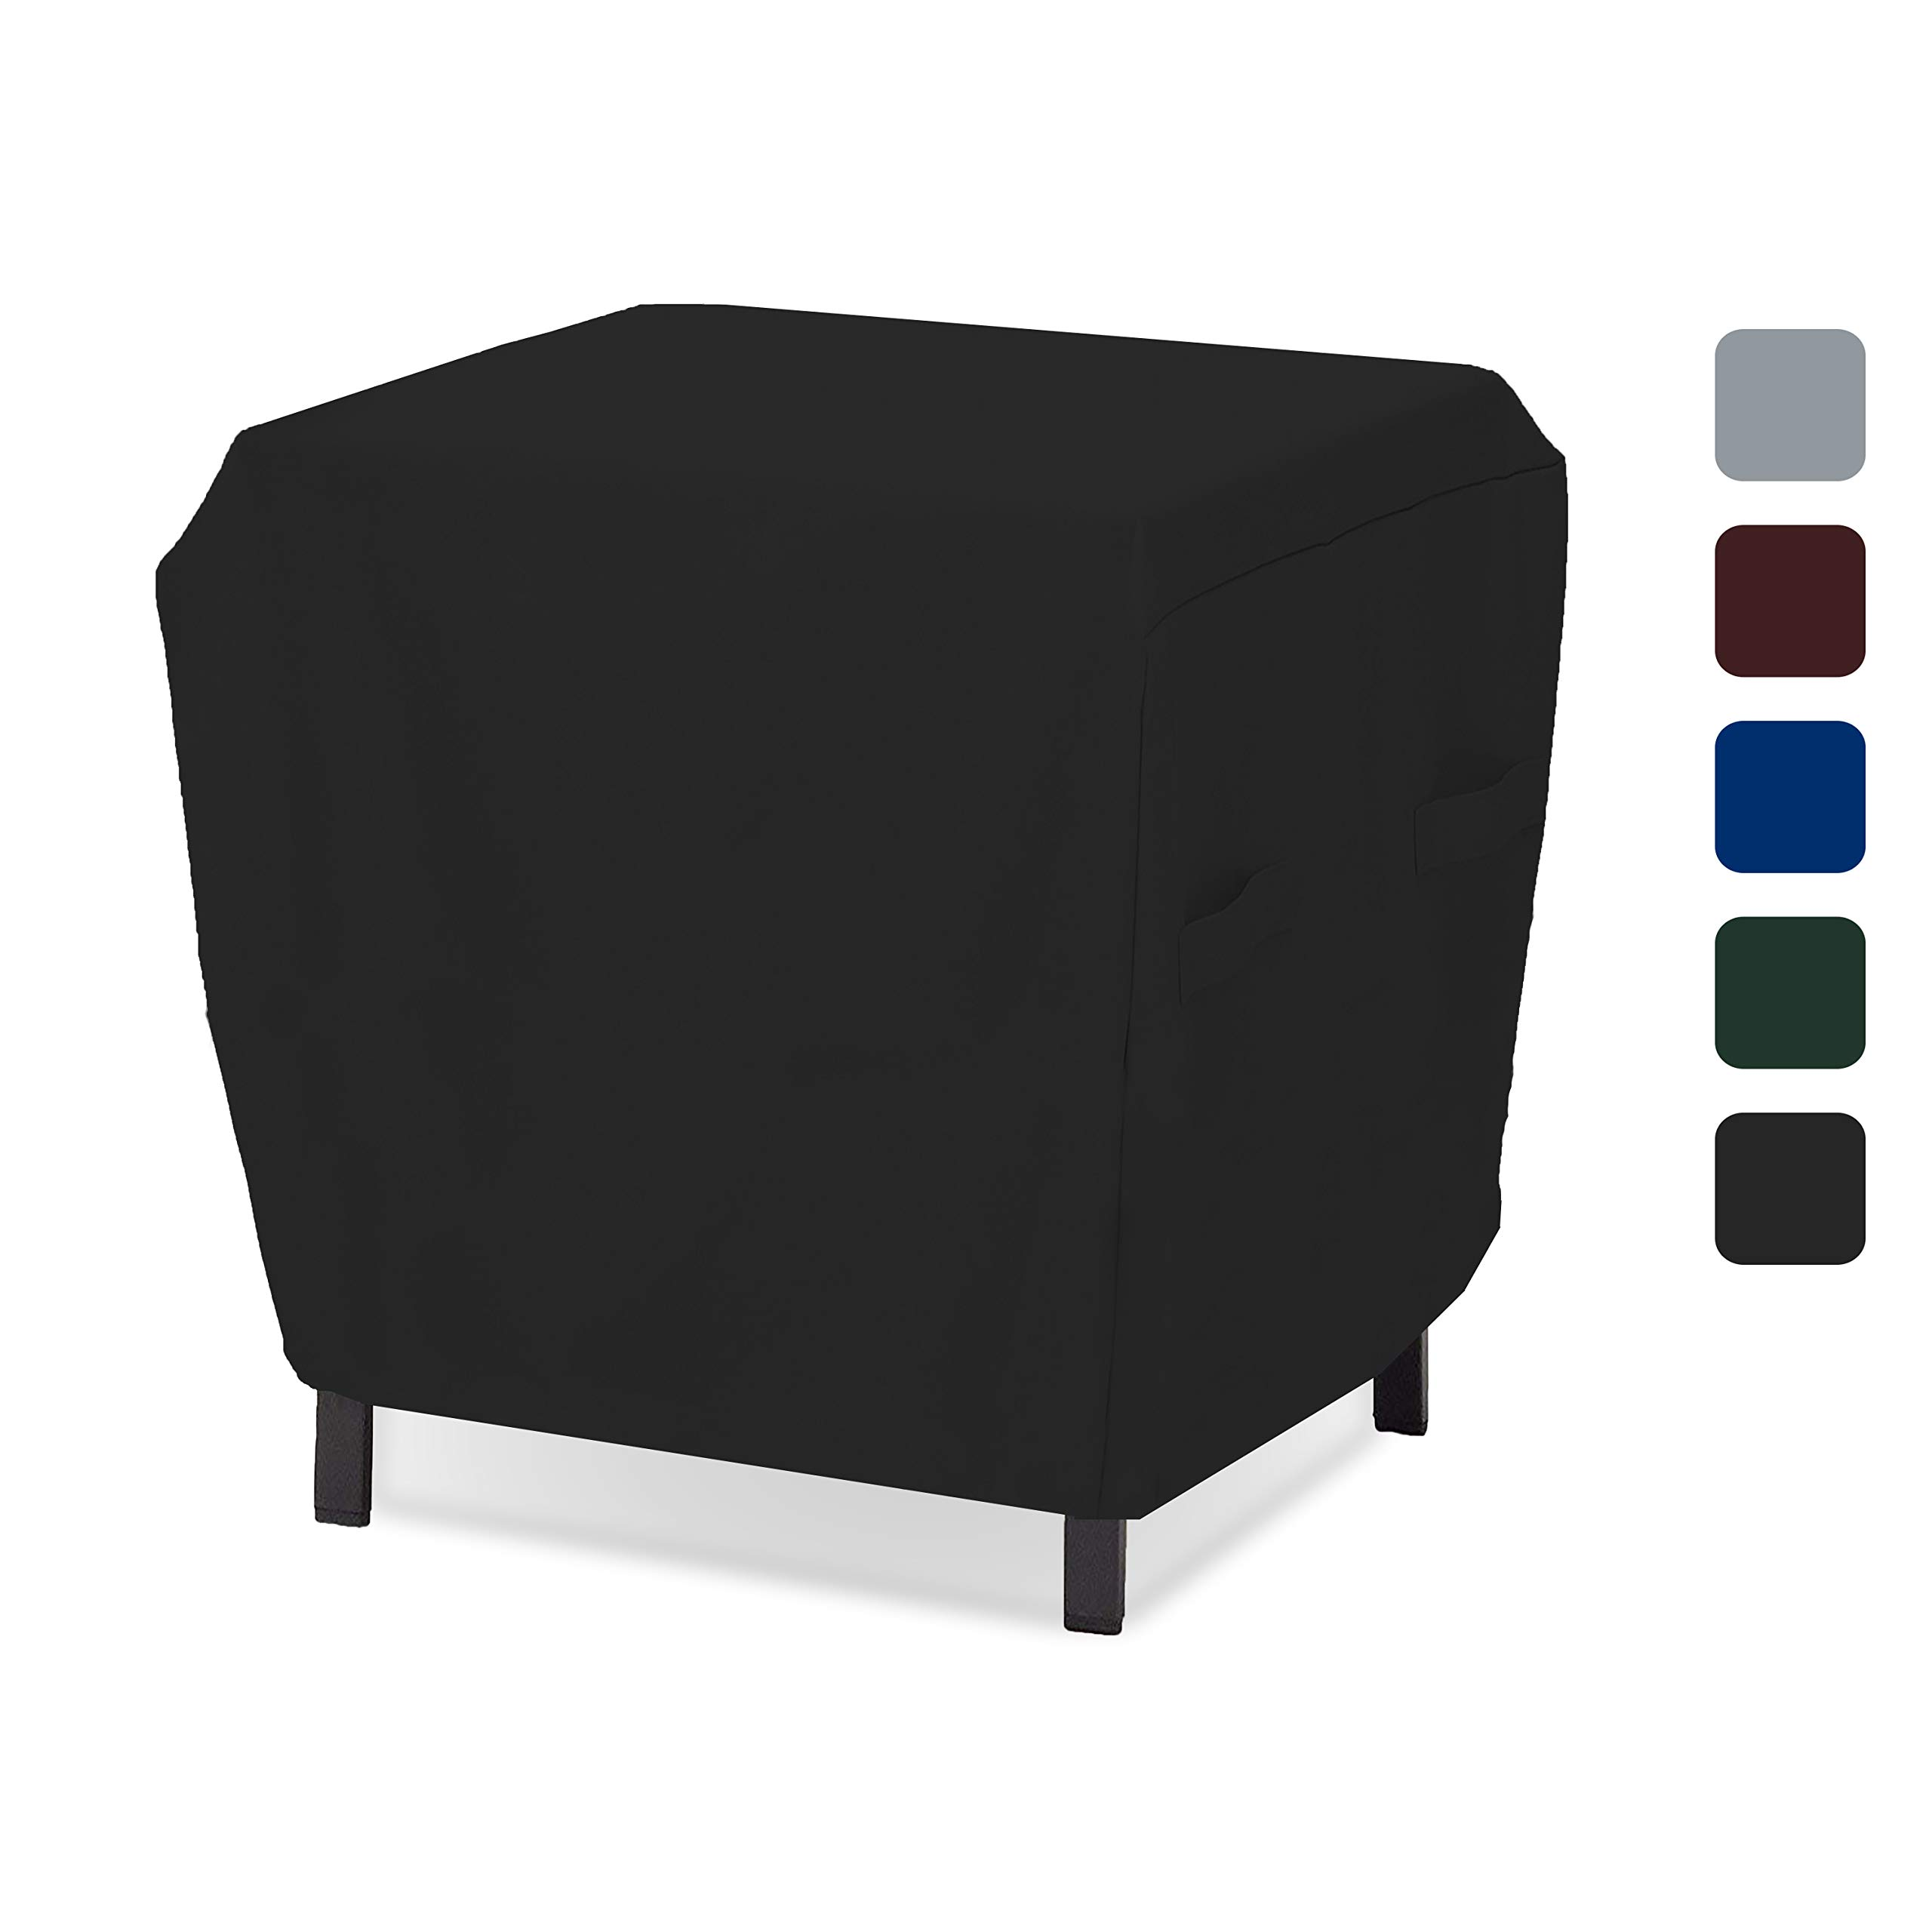 Outdoor Ottoman Cover 18 Oz - Waterproof & Weather Resistant Patio Furniture Covers - Square Ottoman Cover Heavy Duty Fabric with Drawstring for Snug fit (21'' W x 21'' L x 17'' H, Black)